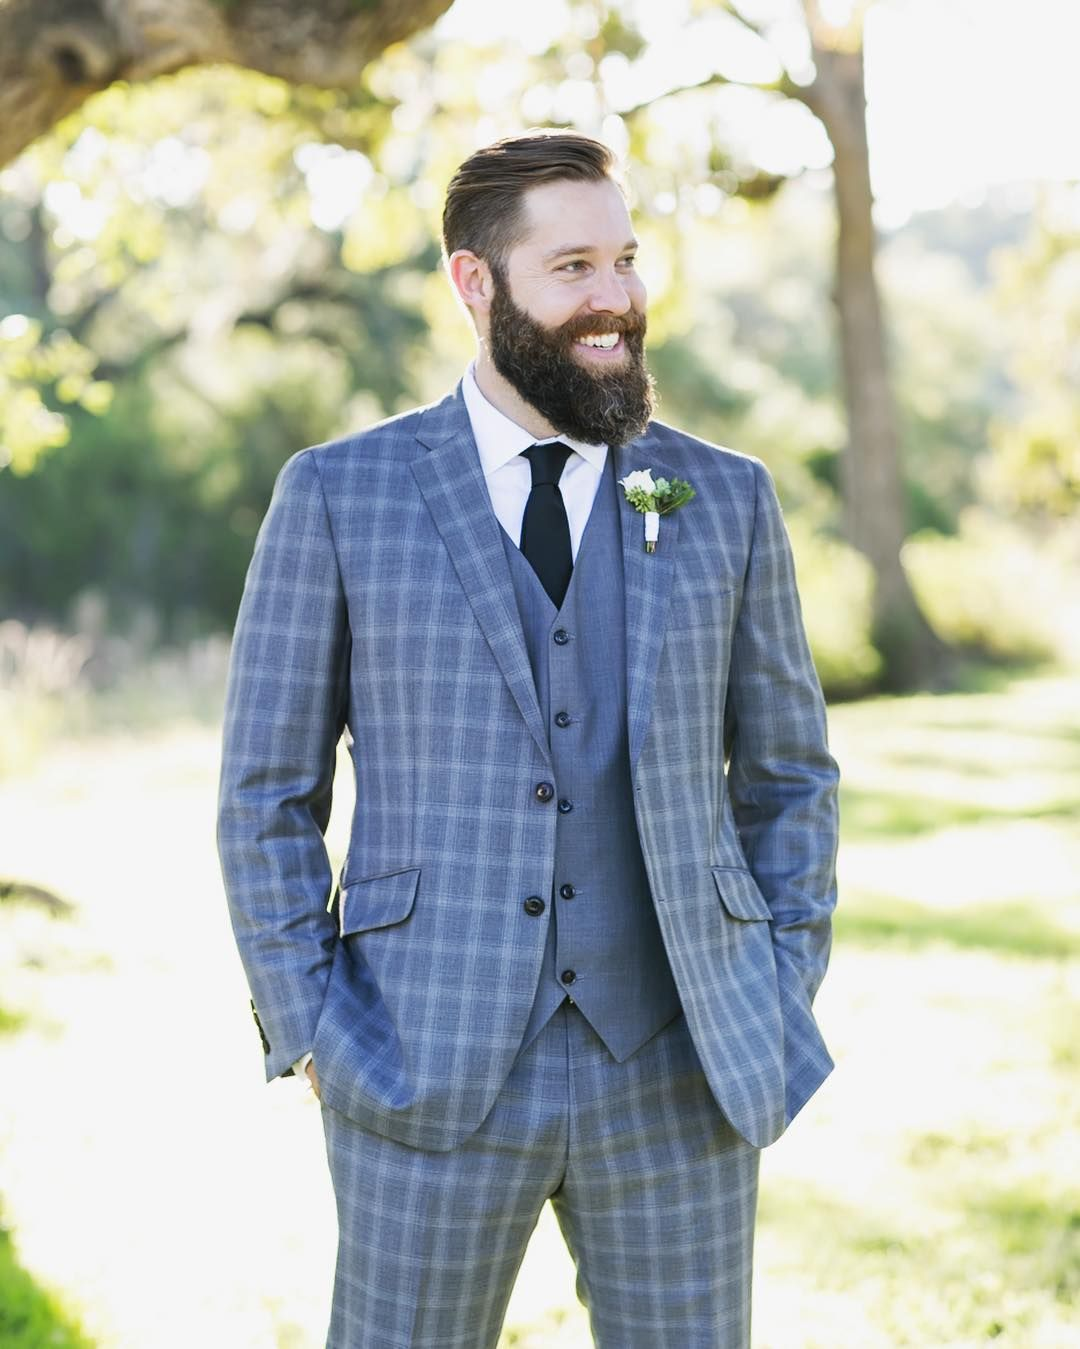 Magnificent Linen Wedding Suits For Men Ideas - Wedding Ideas ...